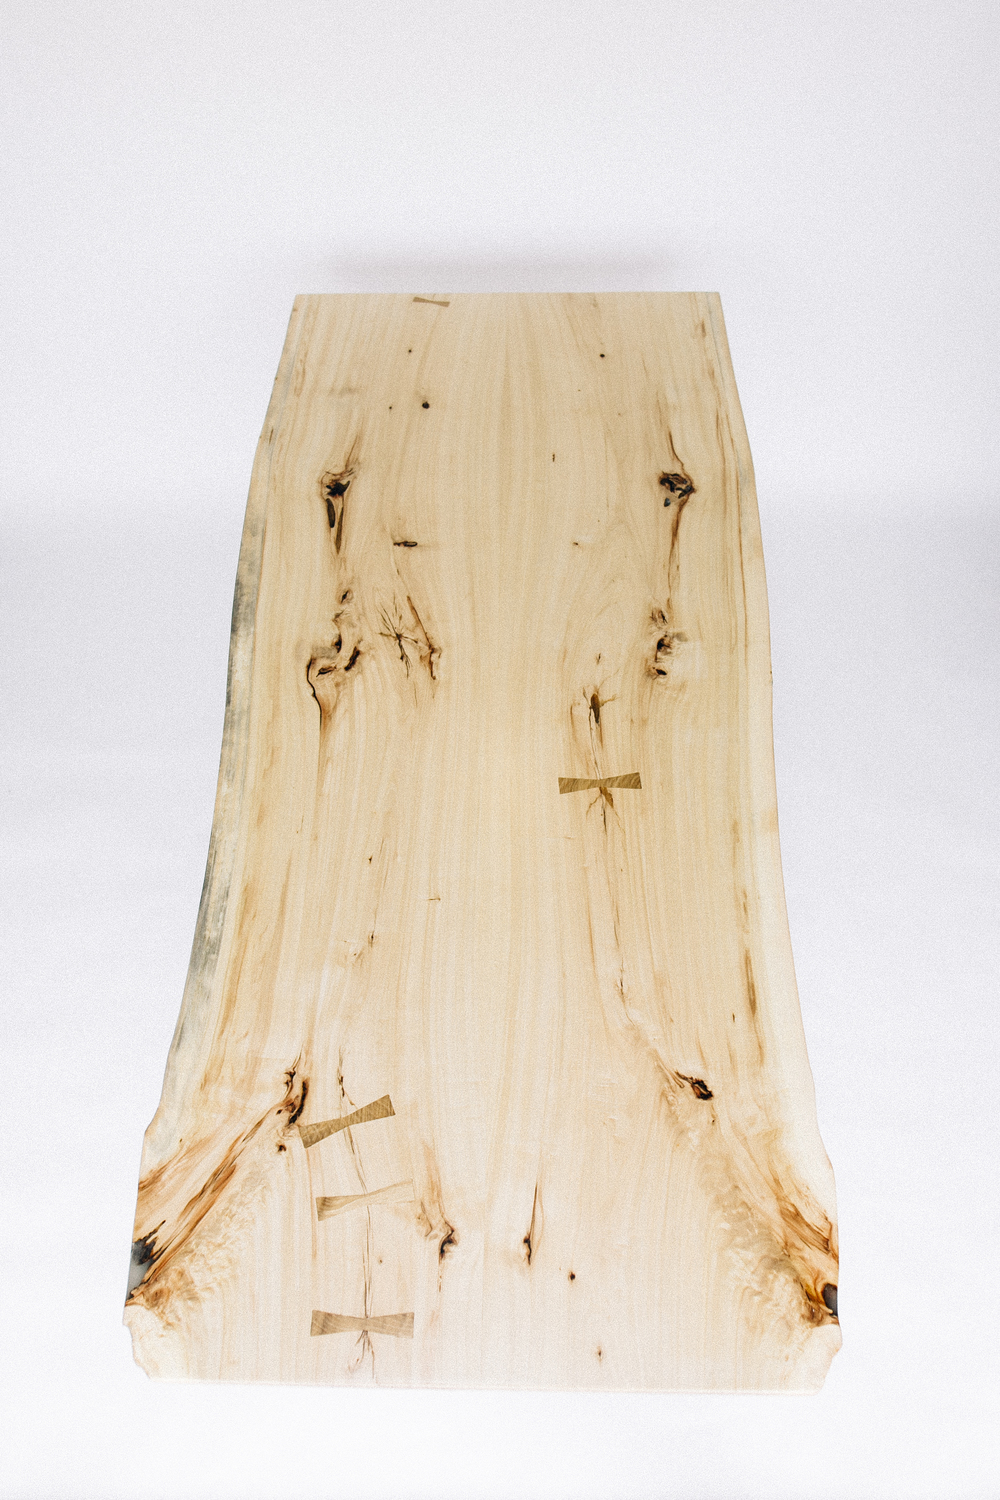 custom modern cottonwood table - scc-22.jpg